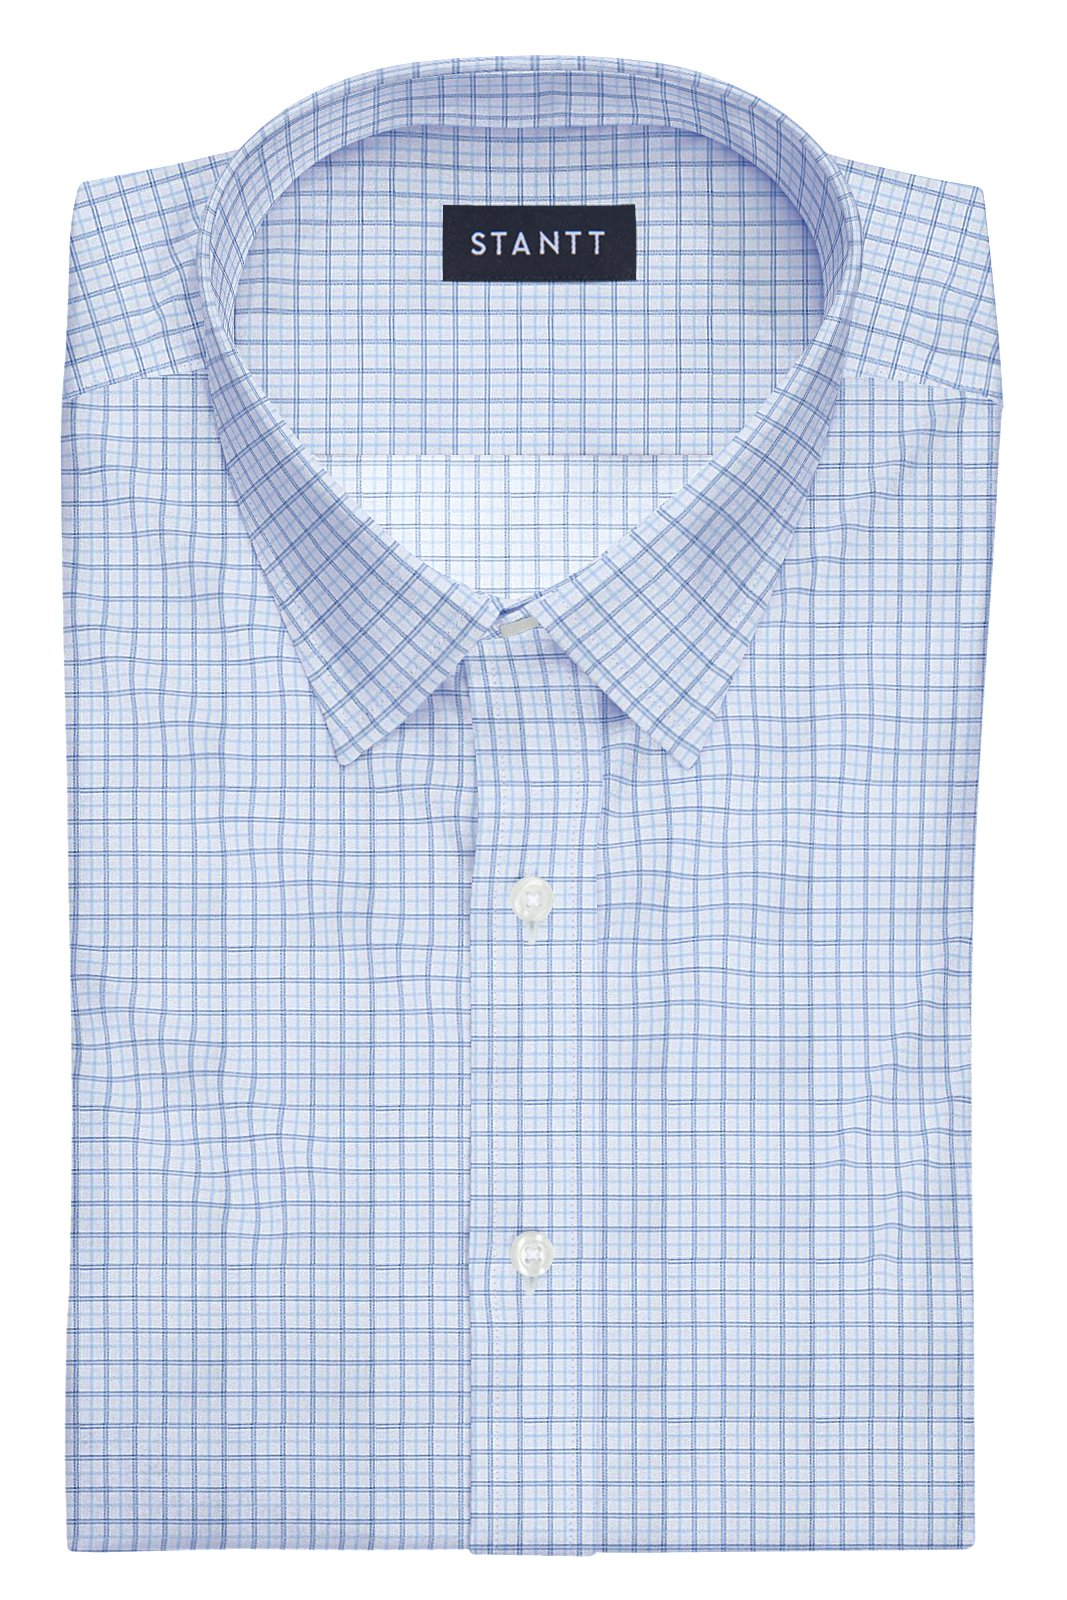 Light Blue Tattersall: Semi-Spread Collar, Barrel Cuff